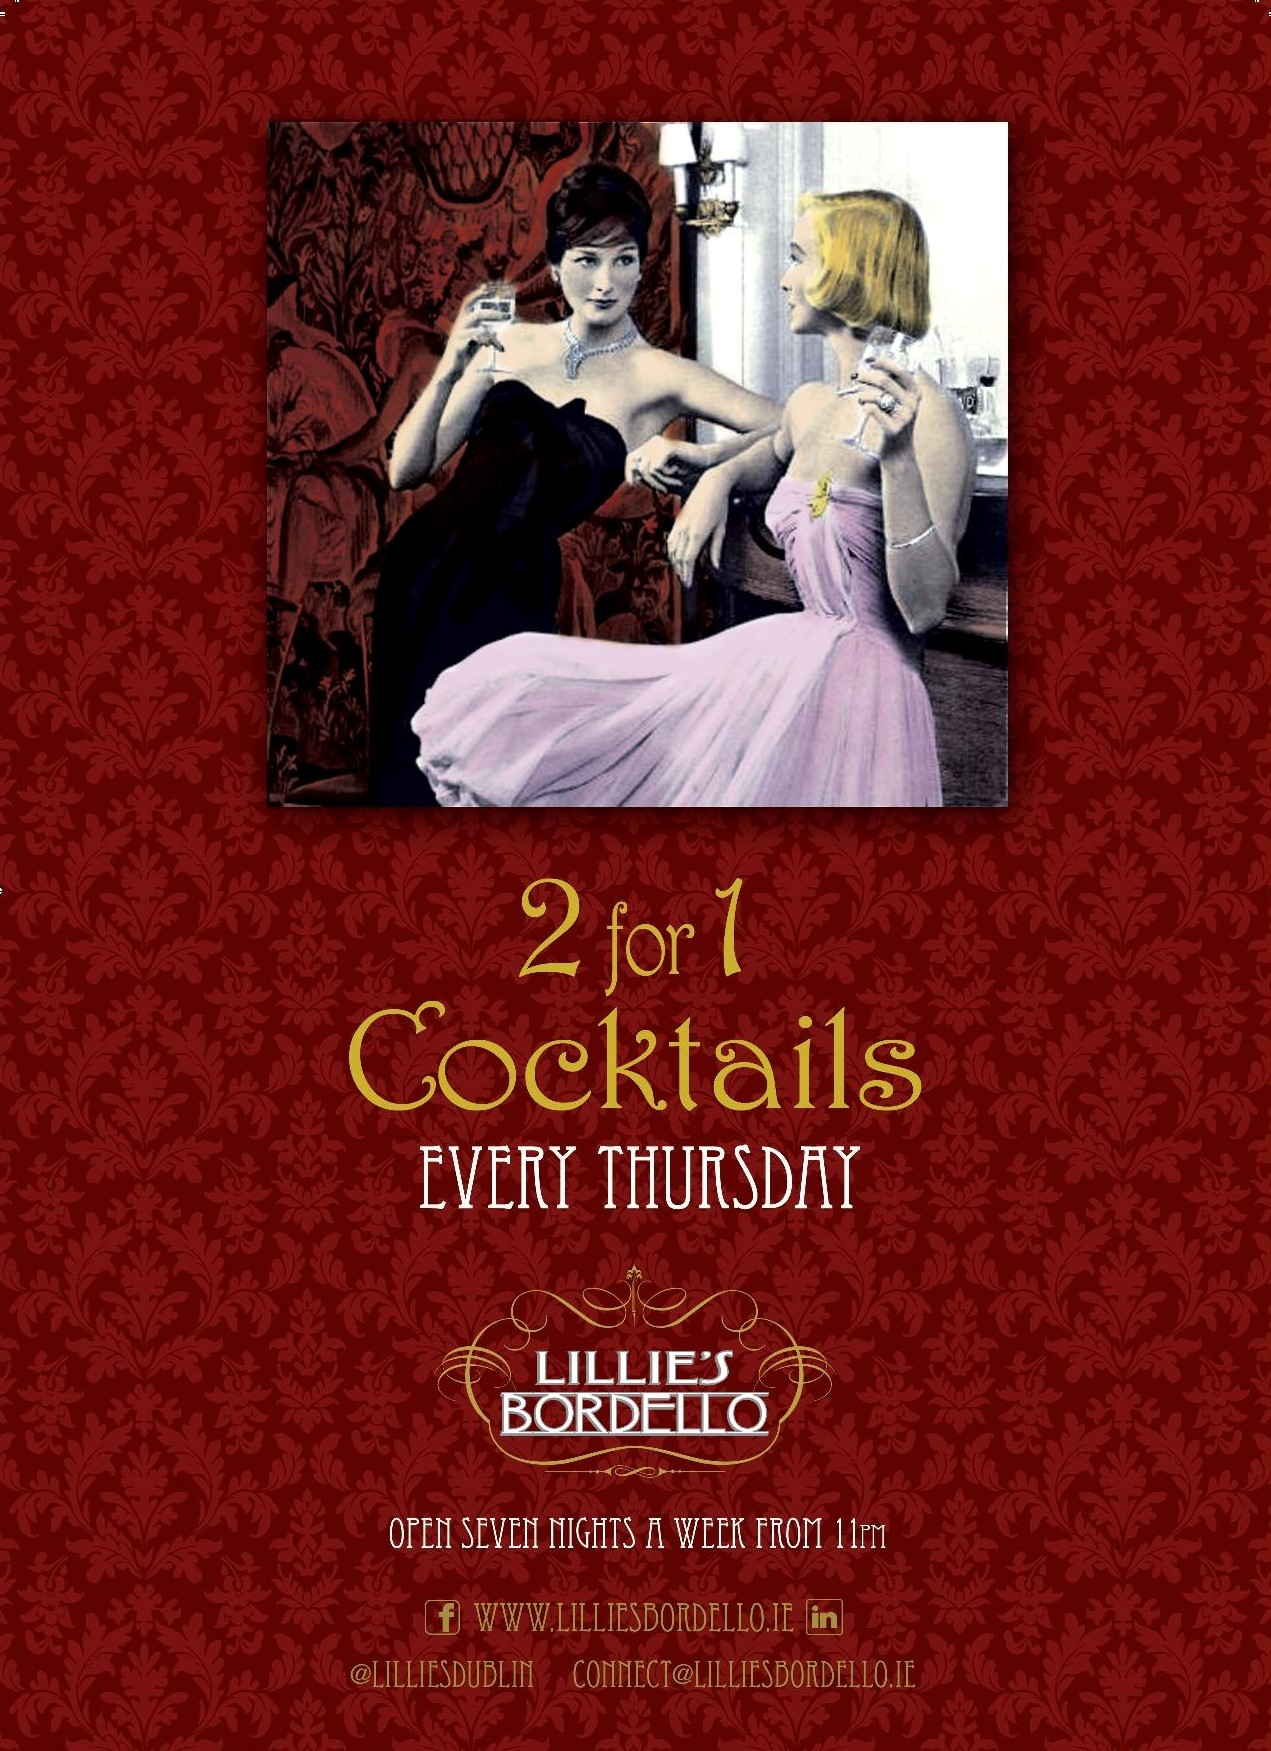 2 for 1 Cocktail Thursdays at Lillie's